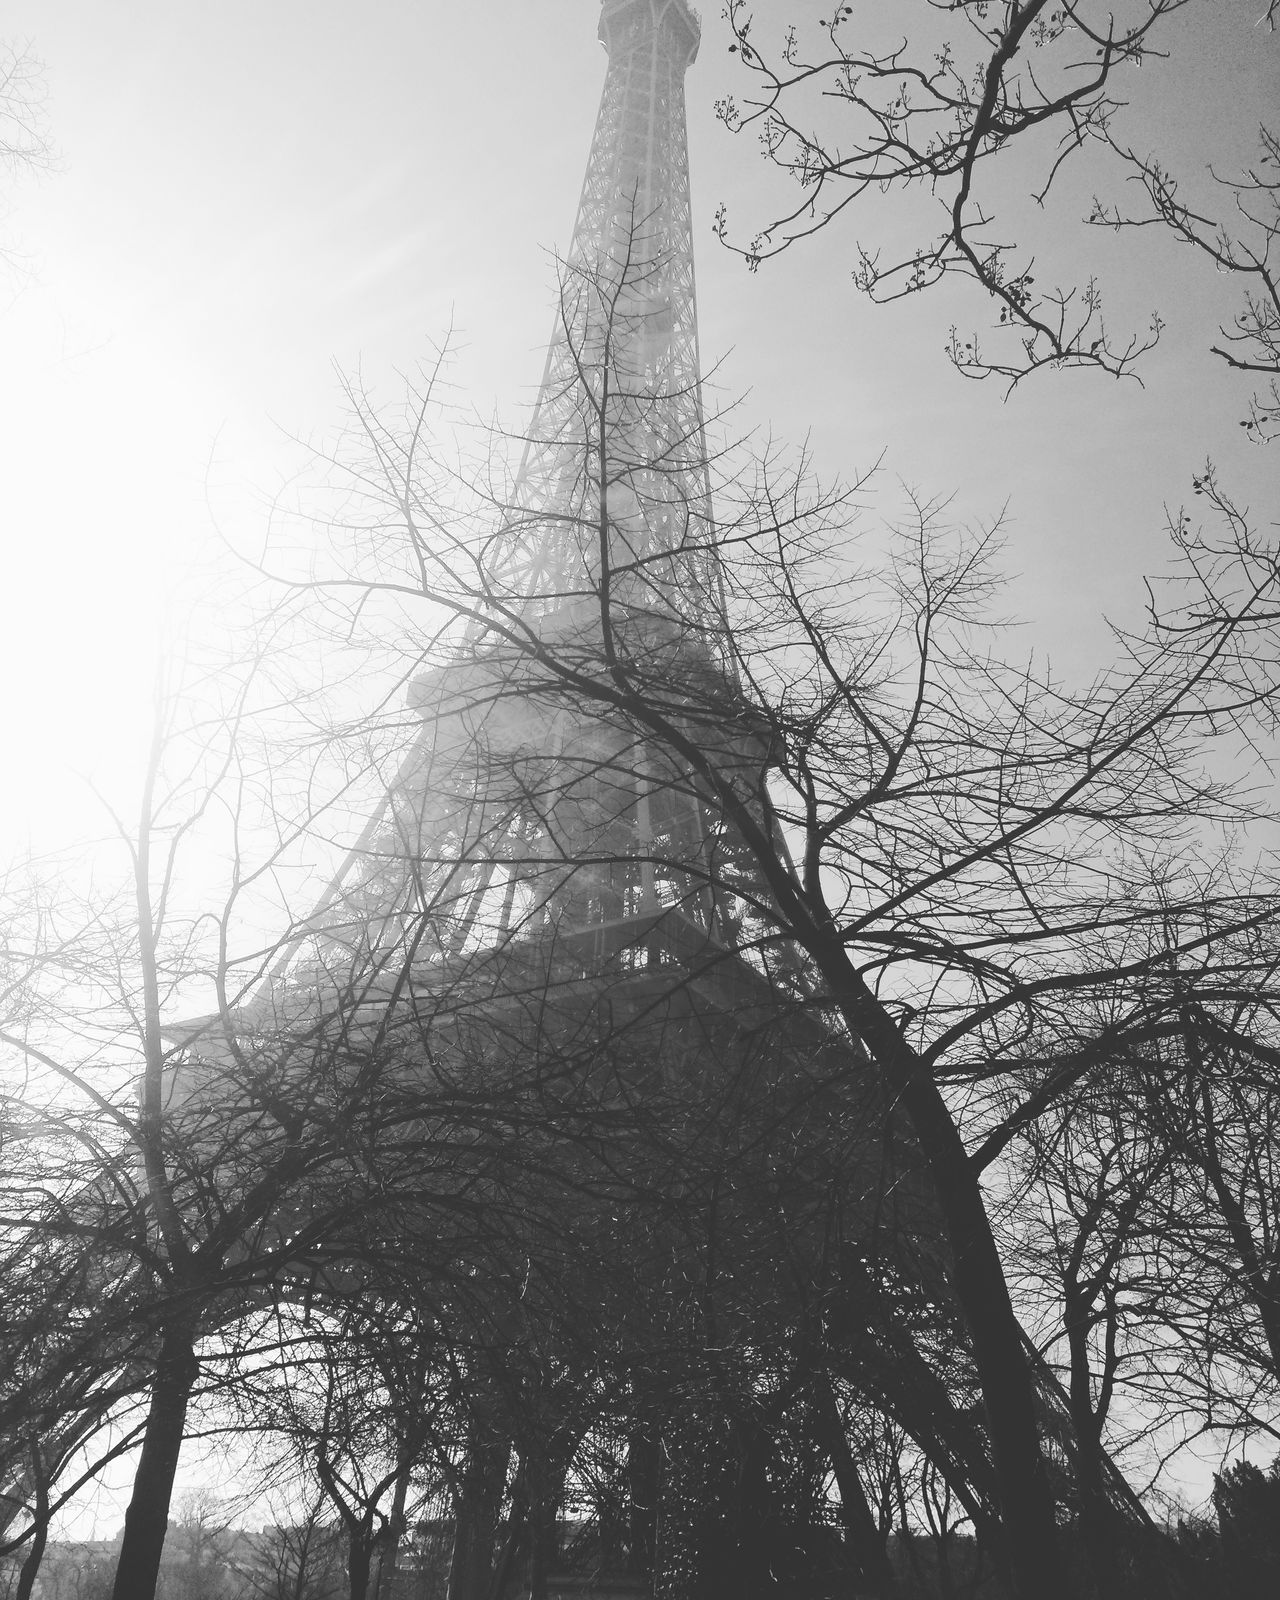 Tourist Attraction  Tourism Travel Travel Photography Historical Building Tourist Attraction  Architecture Art Cloud - Sky Building Exterior Travel Destinations Built Structure Outdoors Eiffel Tower Paris Branch Low Angle View Tree France Day Sky Black And White Black & White